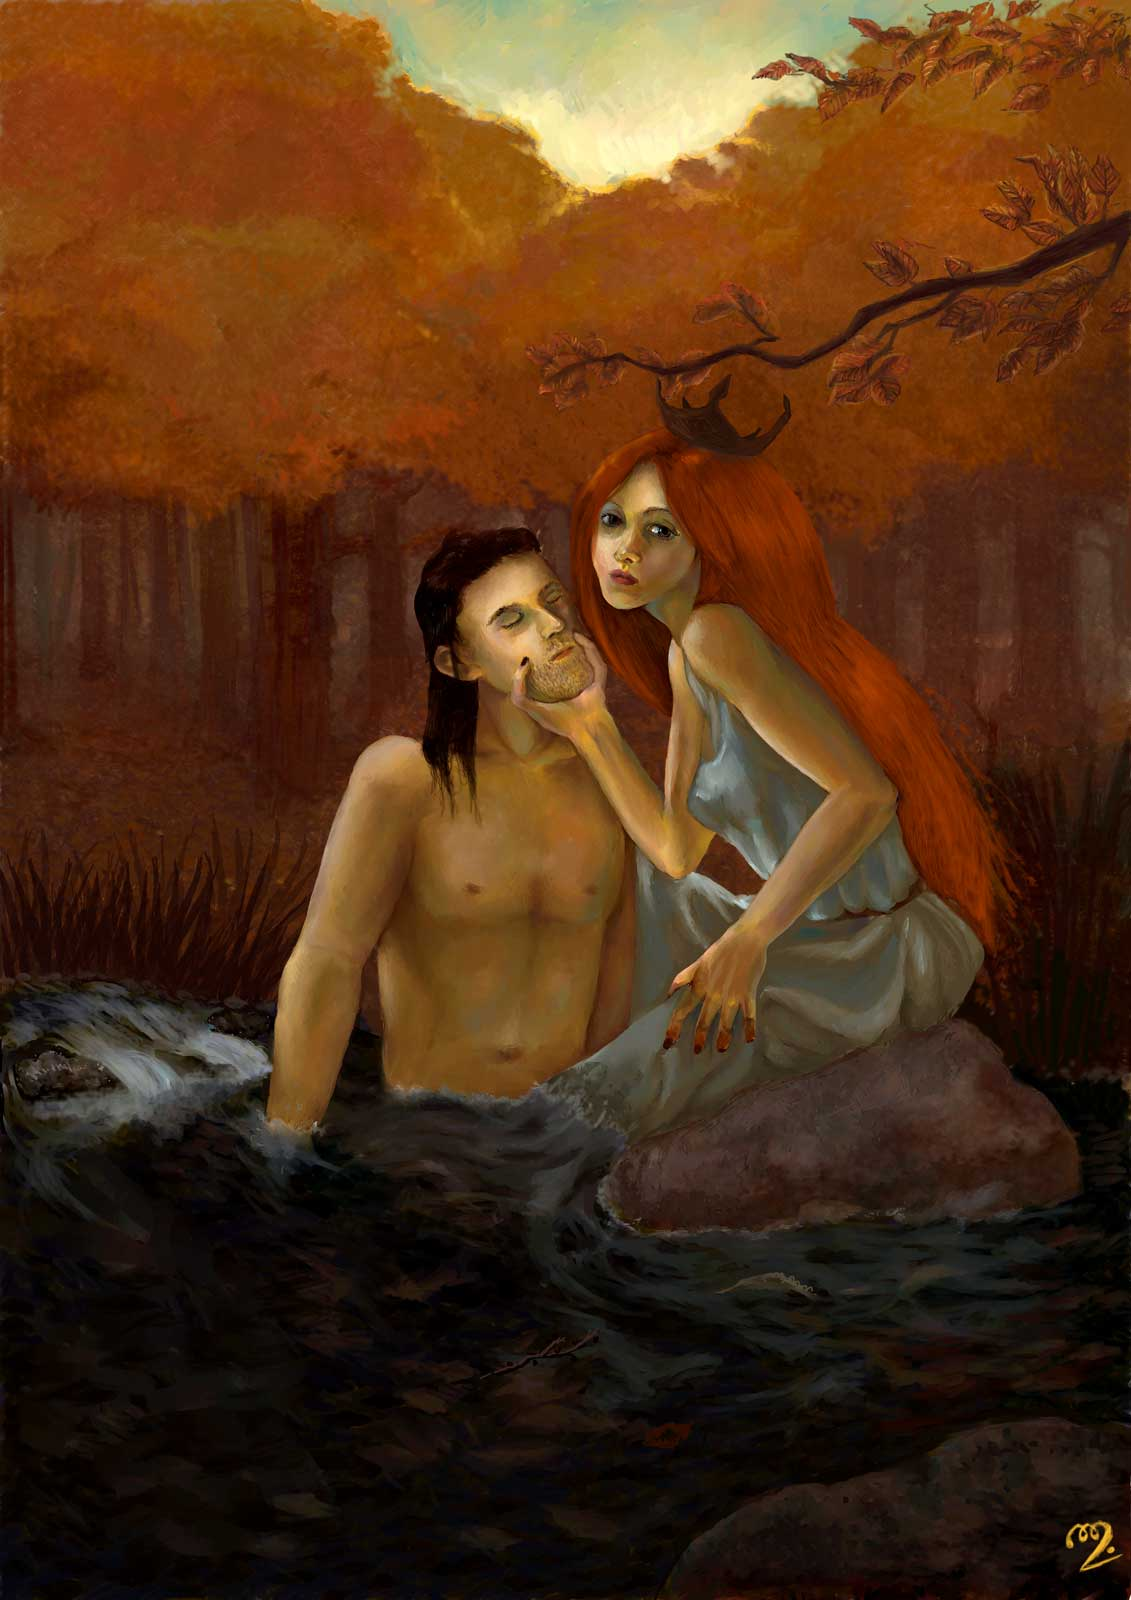 A red-haired rusalka entraps a man in the midst of a river in the autumnal woods at sunset.